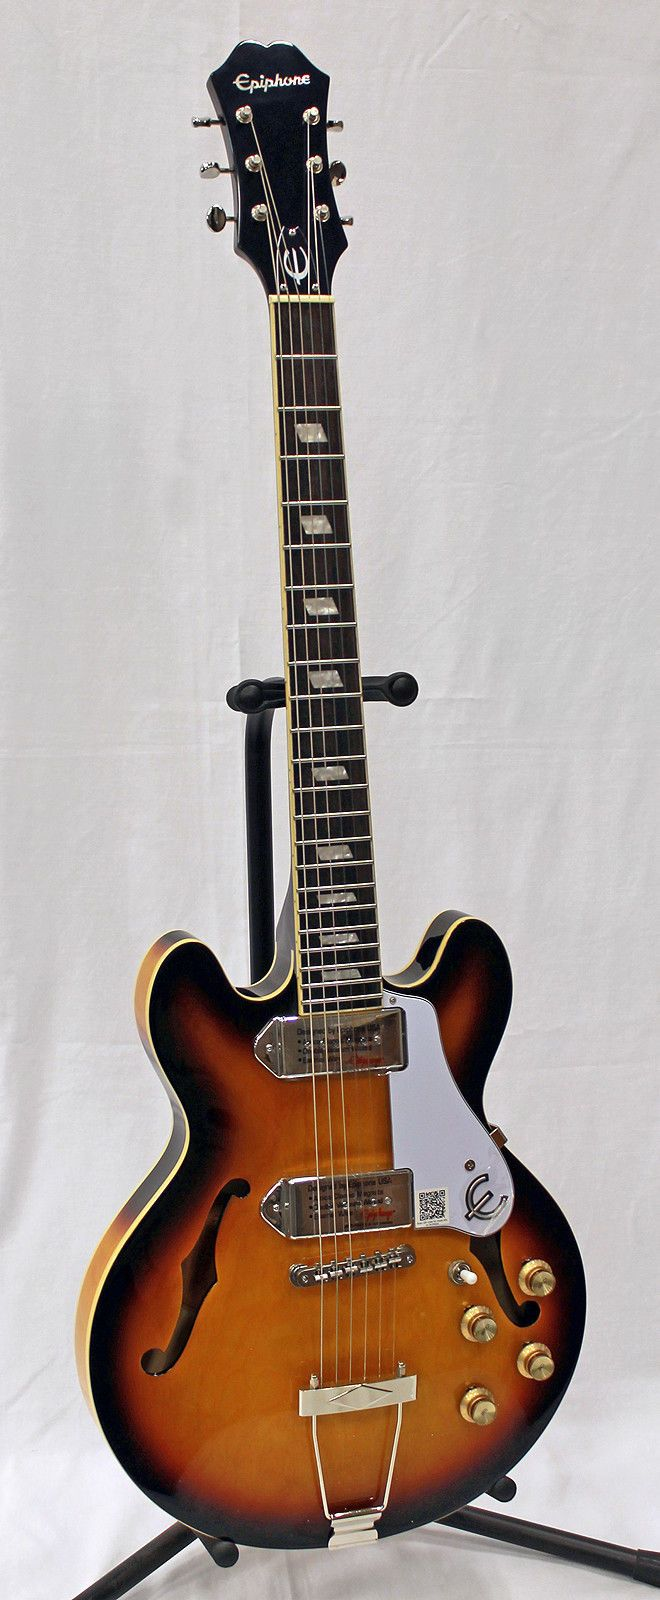 Epiphone ETCCVSNH1 Legendary Vintage Sunburst Casino Coupe Electric Guitar The Epiphone Casino Coupe is the legendary Casino reborn in an ES-339 body ... #coupe #electric #guitar #casino #sunburst #legendary #vintage #epiphone